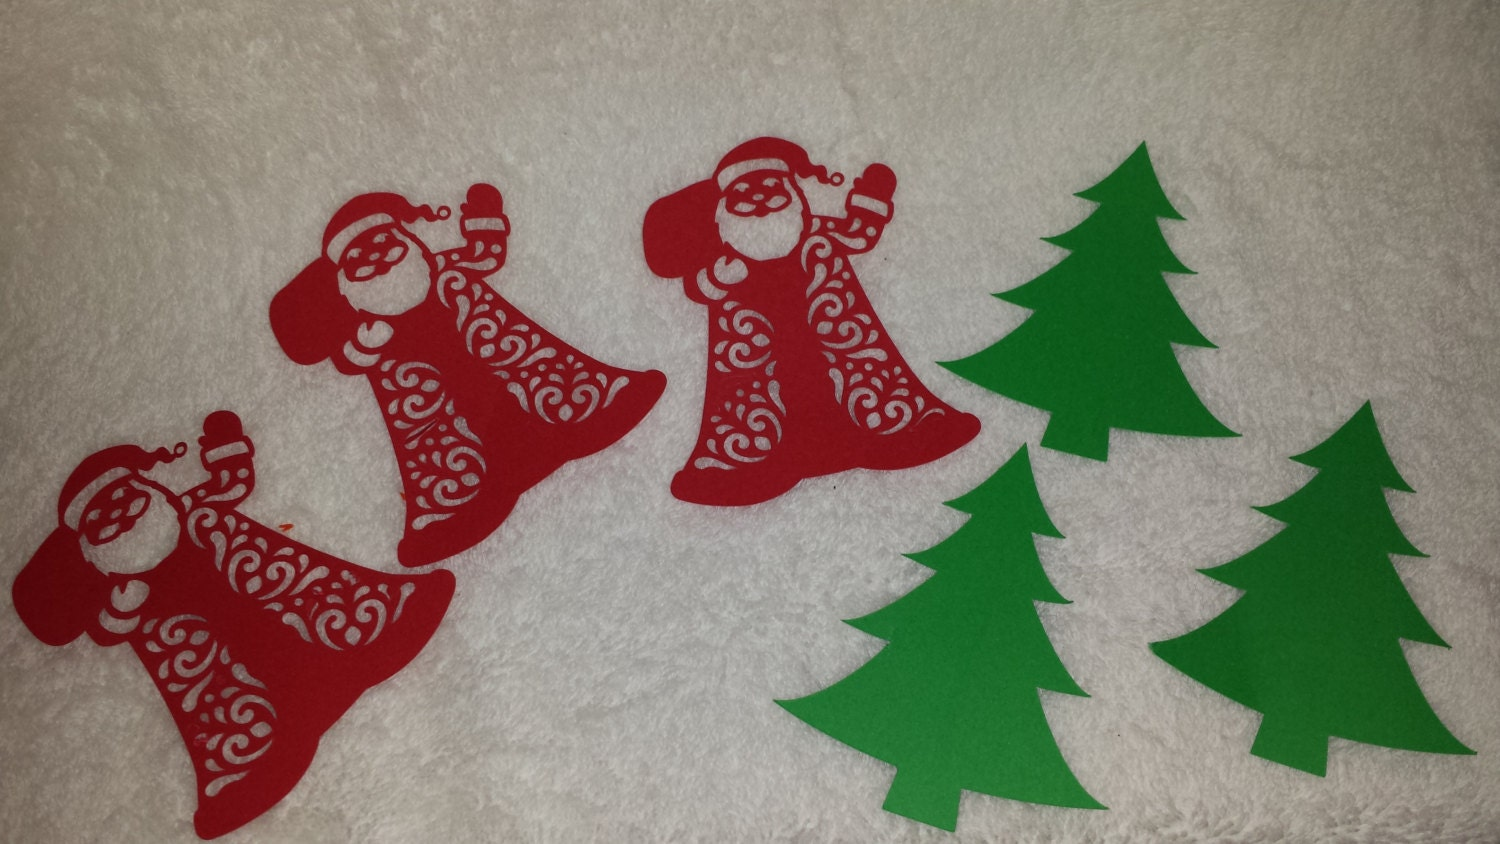 Christmas Tree And Santa Paper Cut-outs By Yourgalfridayfl